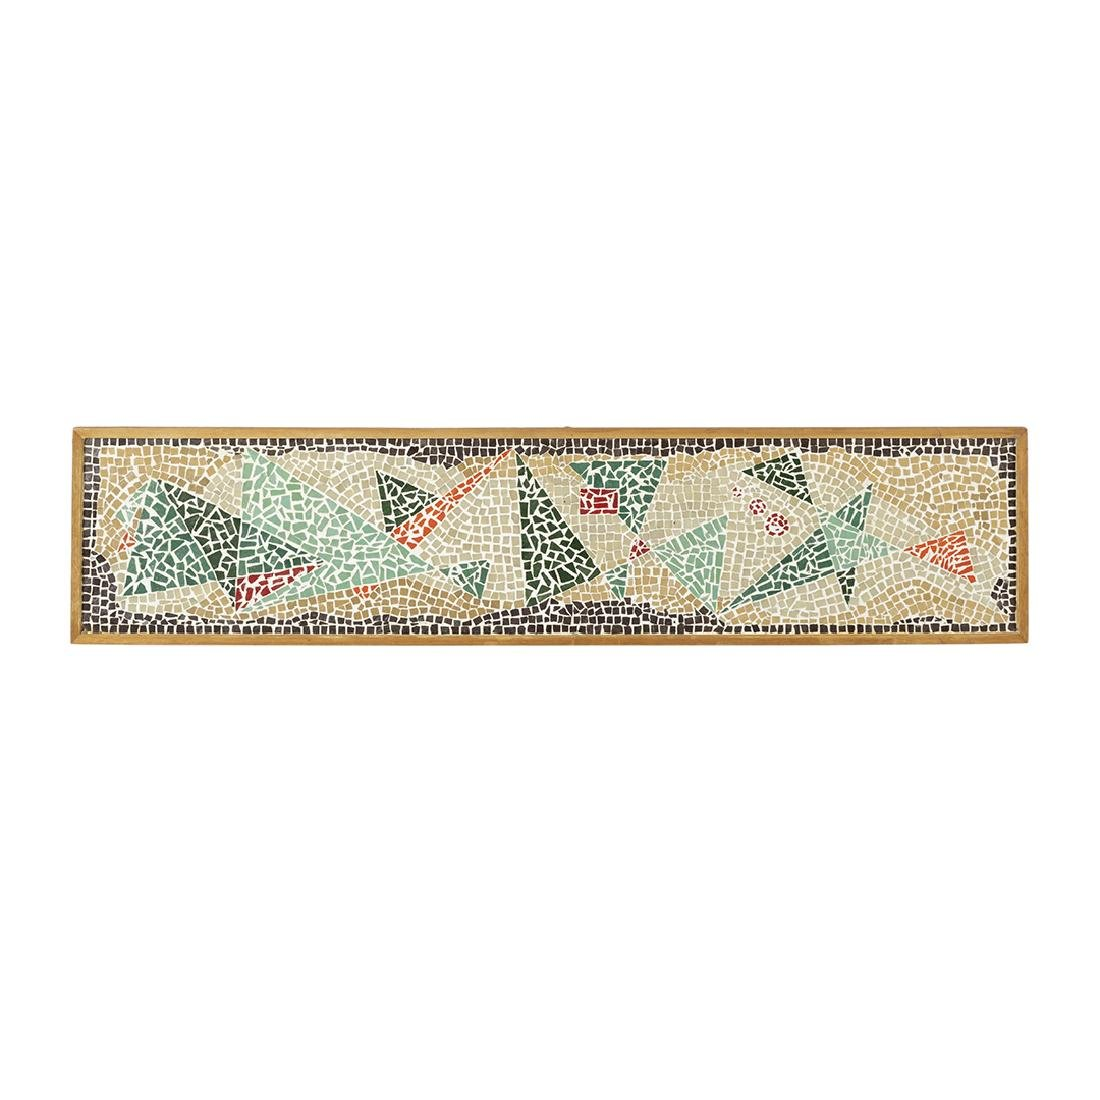 Modernist Abstract Tile Mosaic